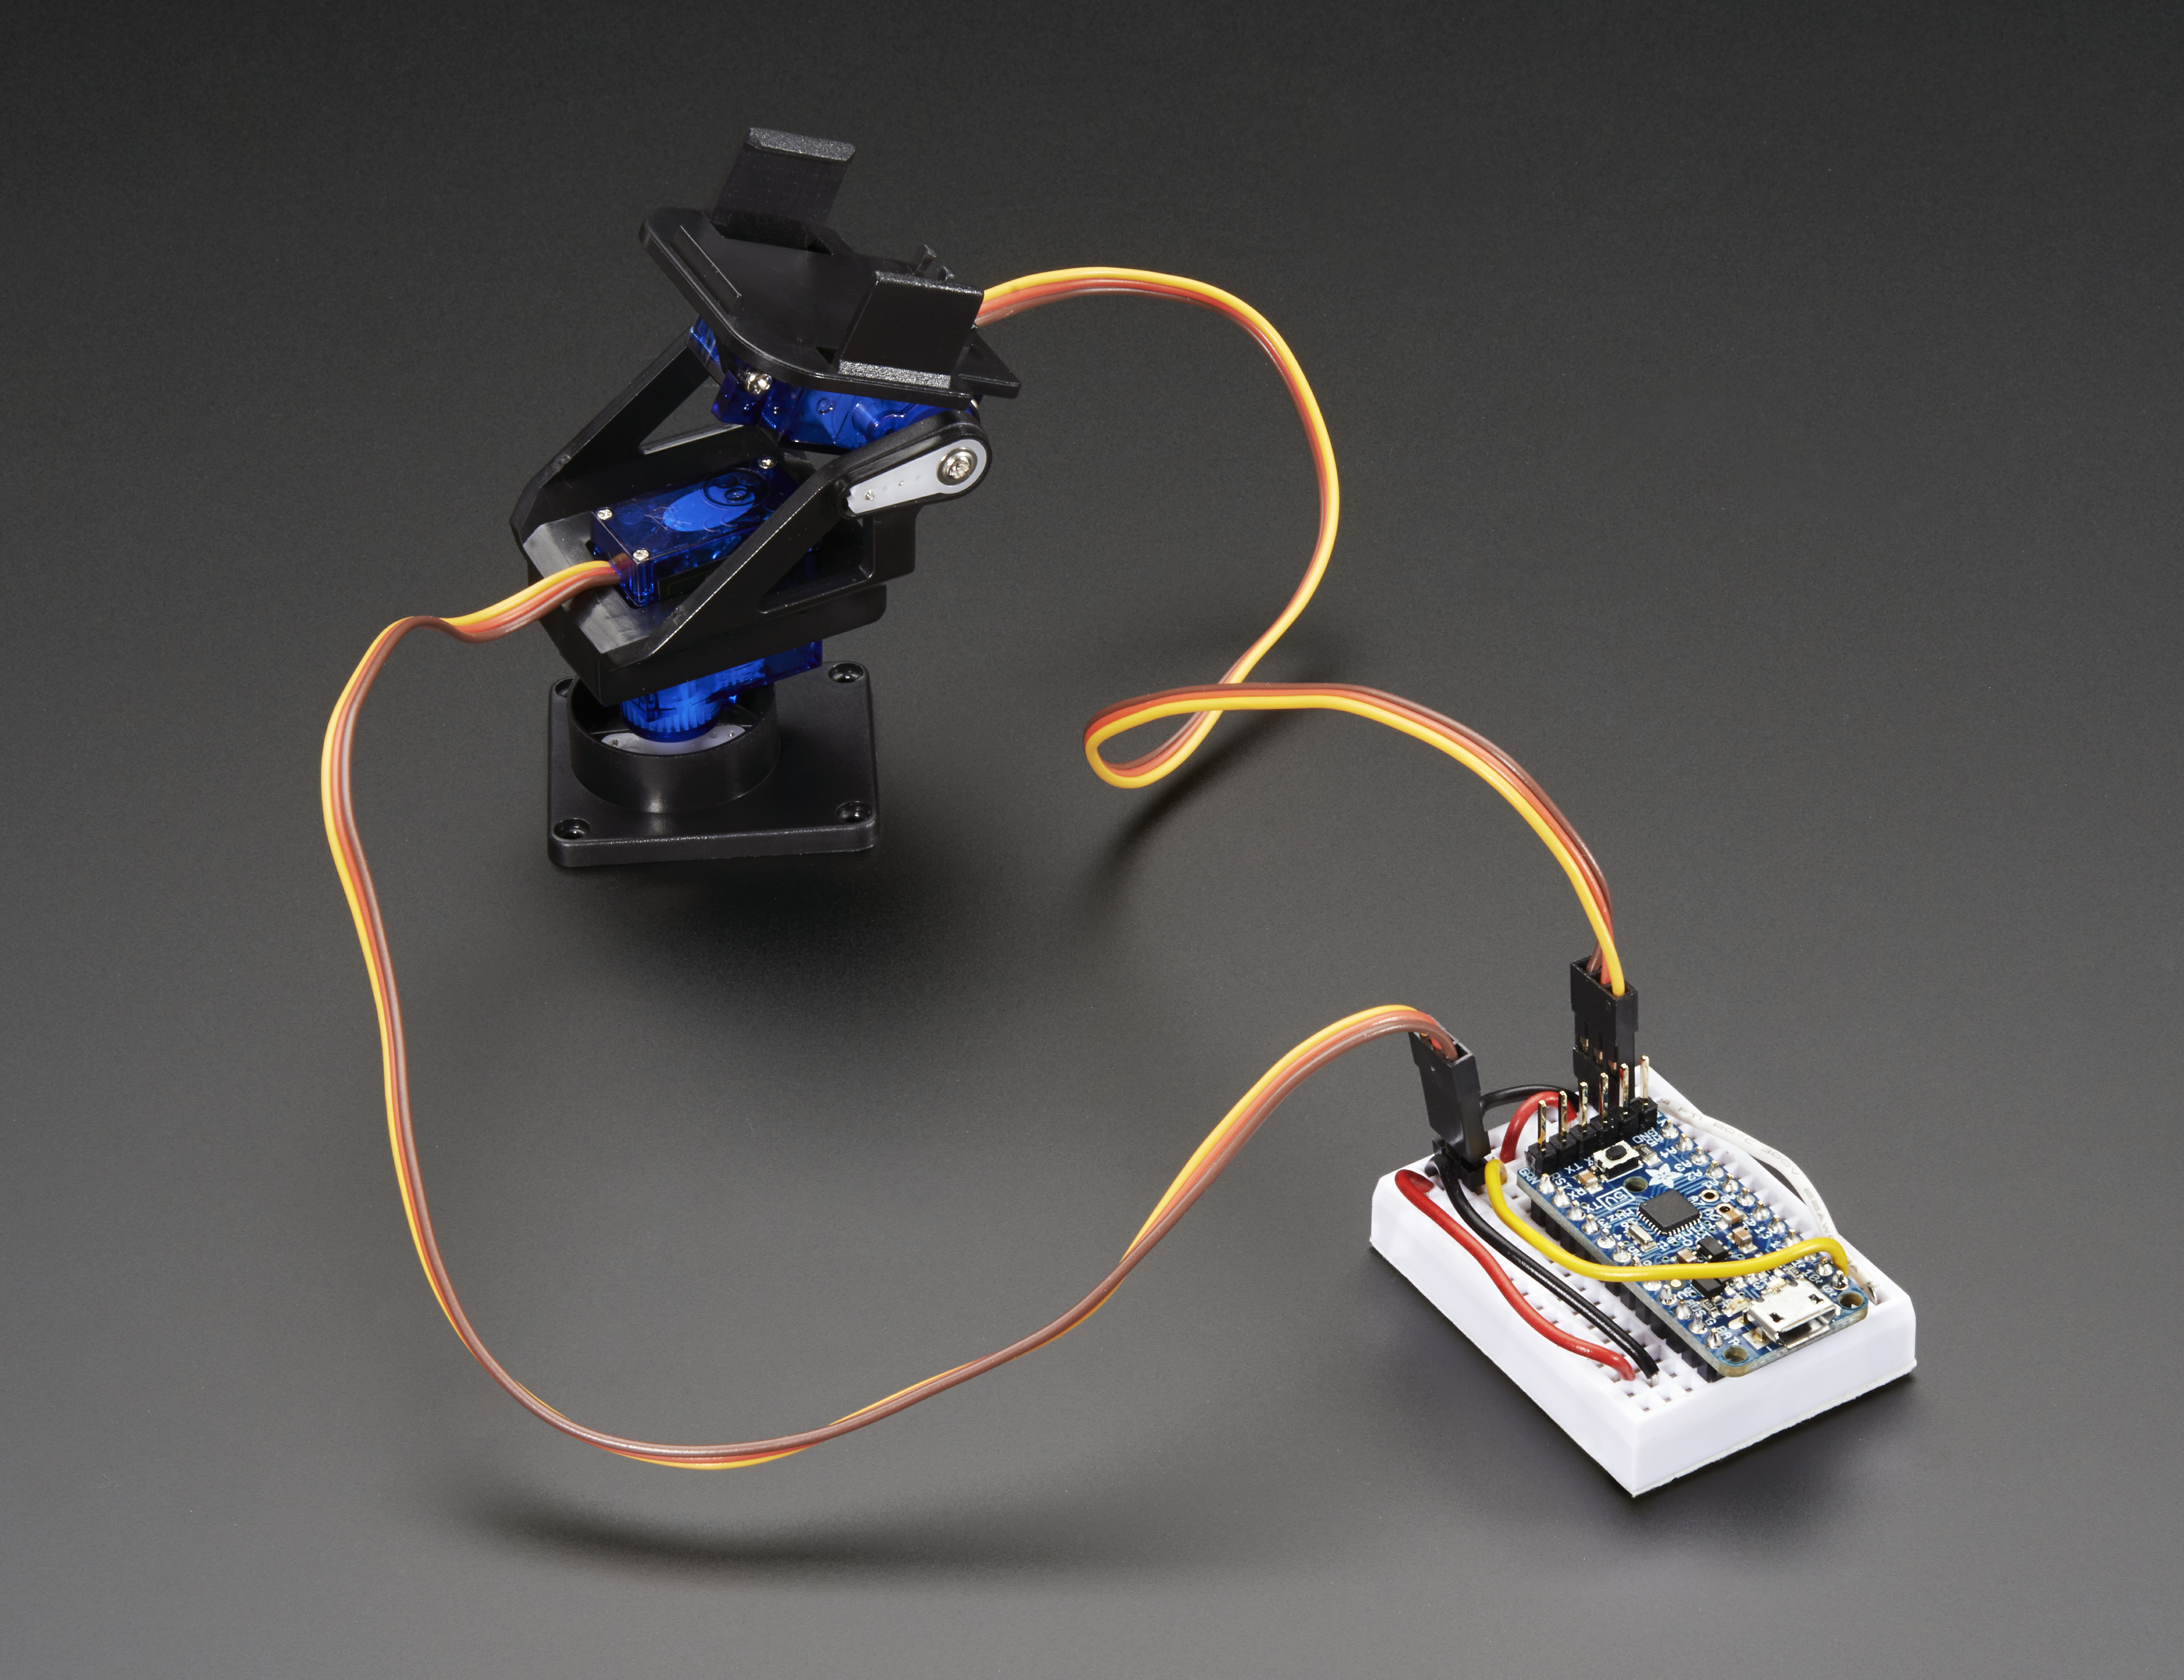 adafruit_products_2000_iso_demo_ORIG.jpg